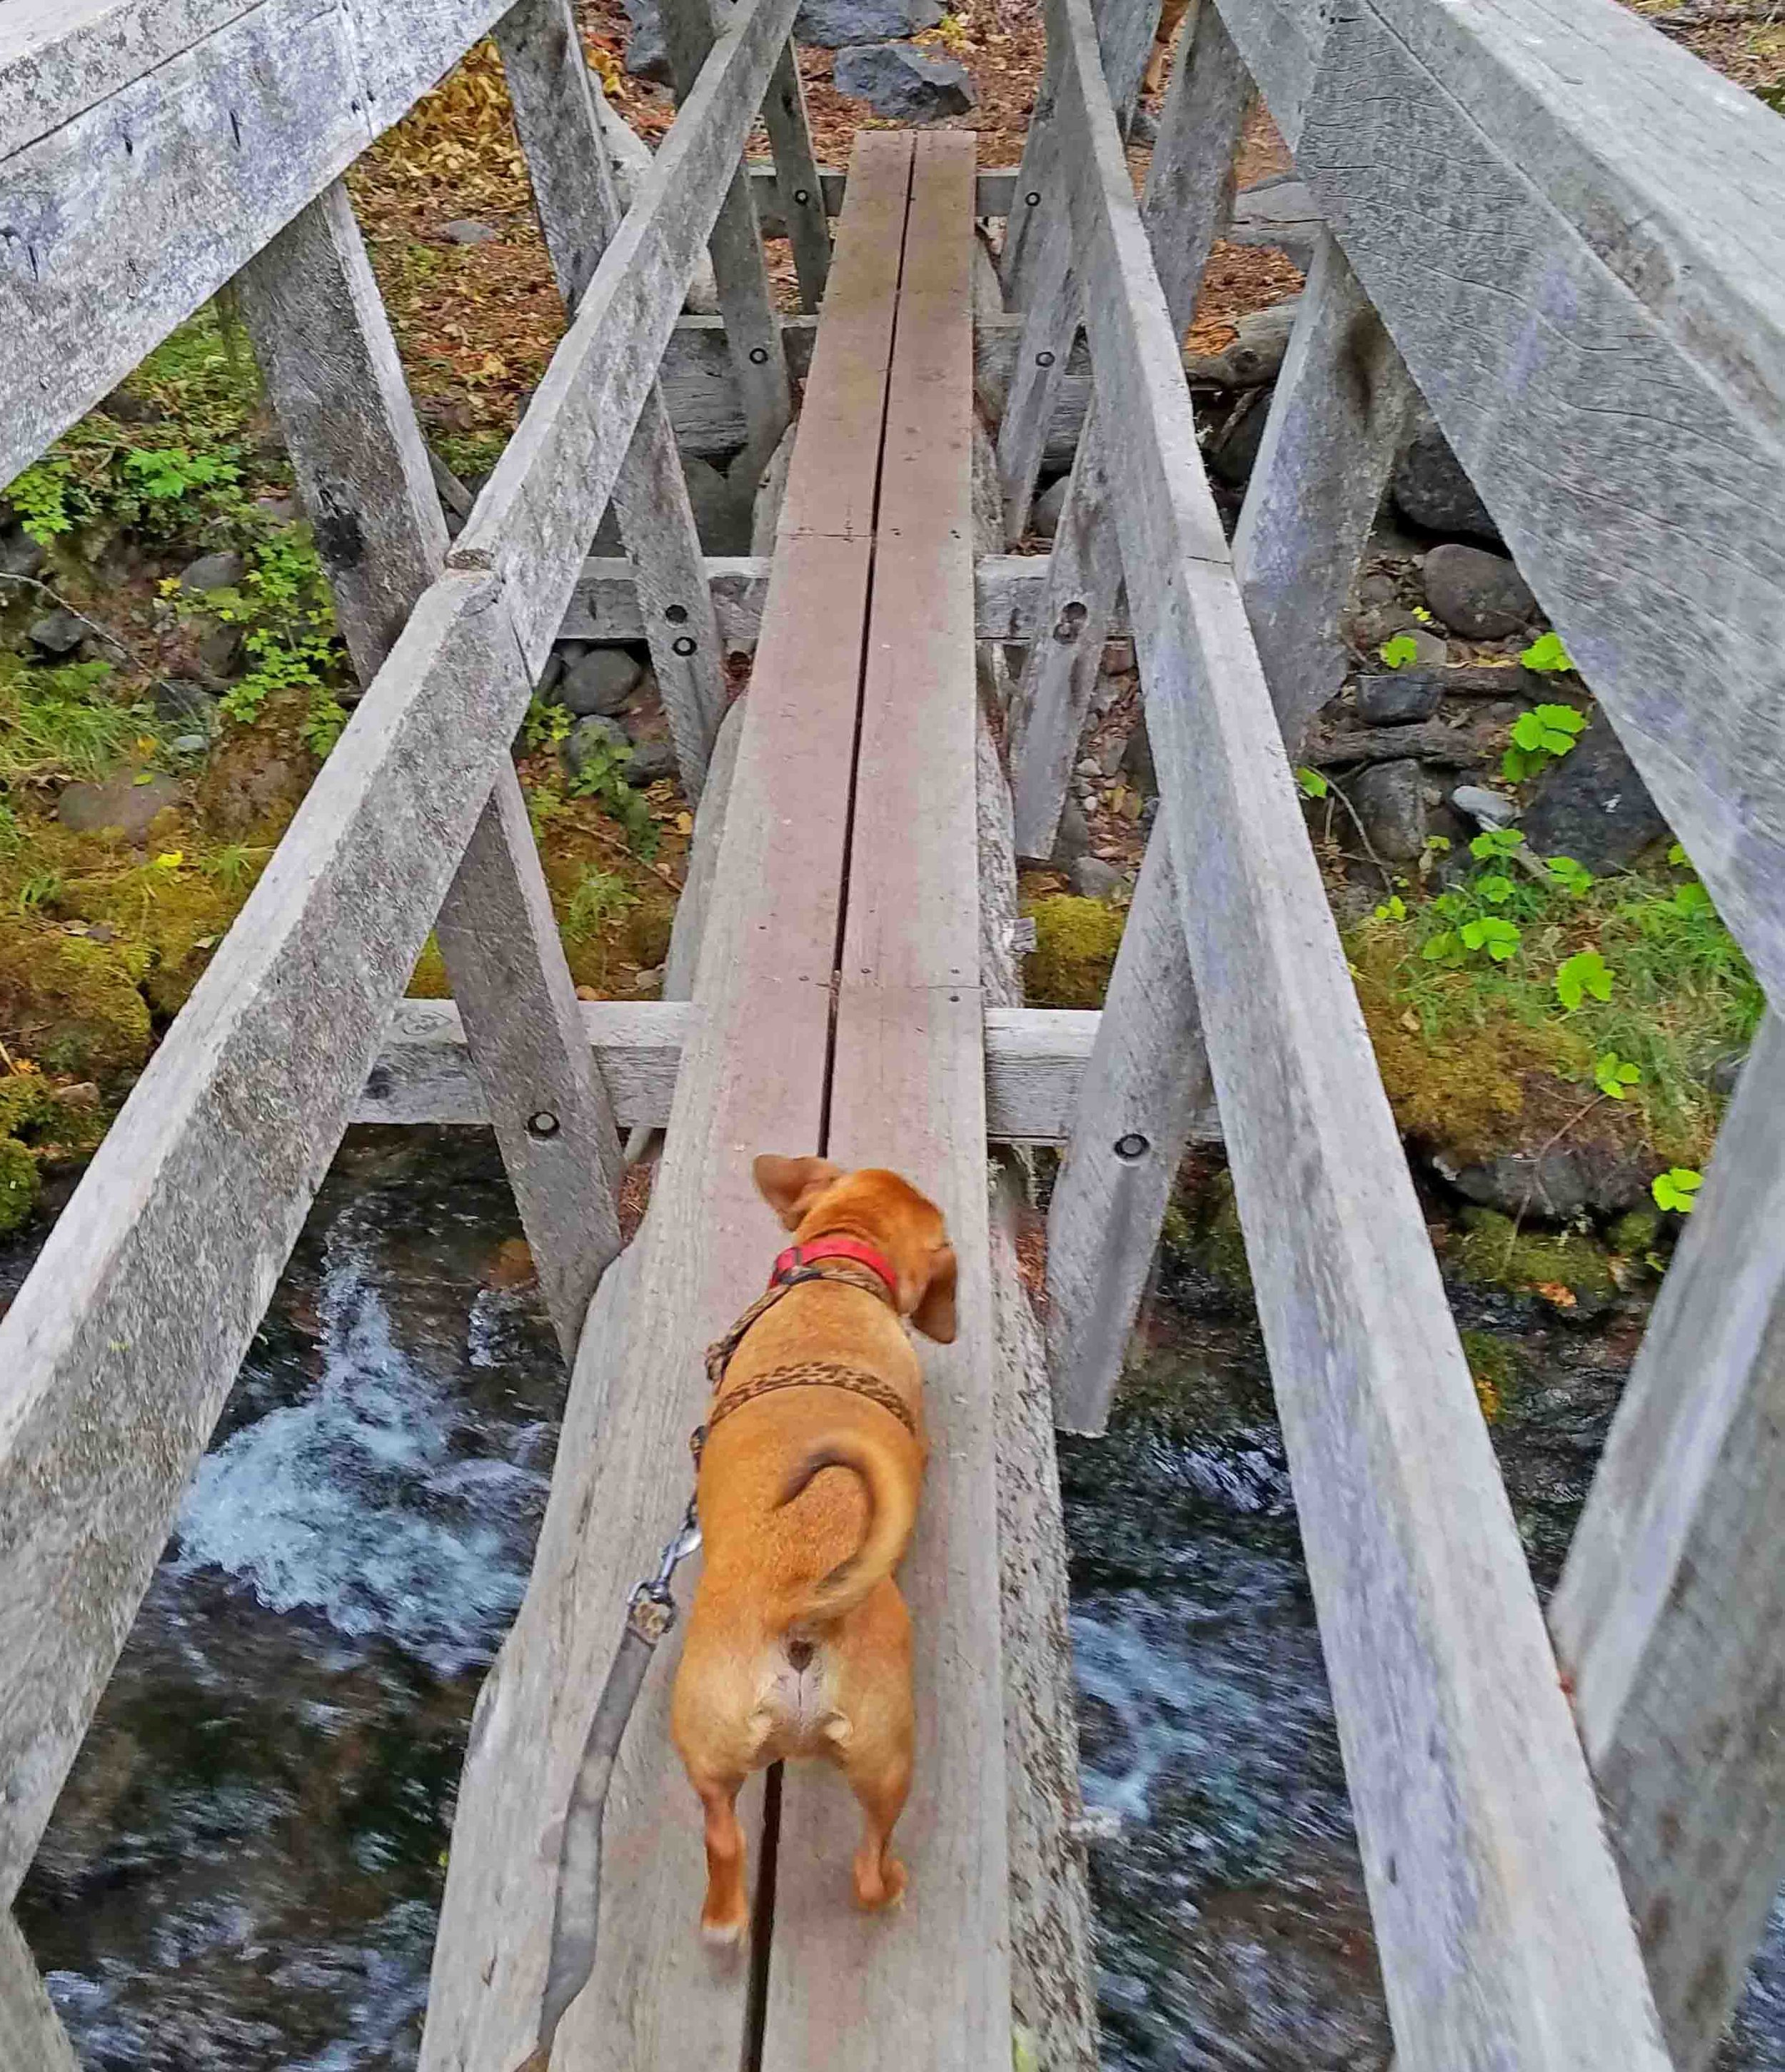 My brave little doxie walks the plank of life…. Photo: (c) Barb Ayers, DogDiary.org